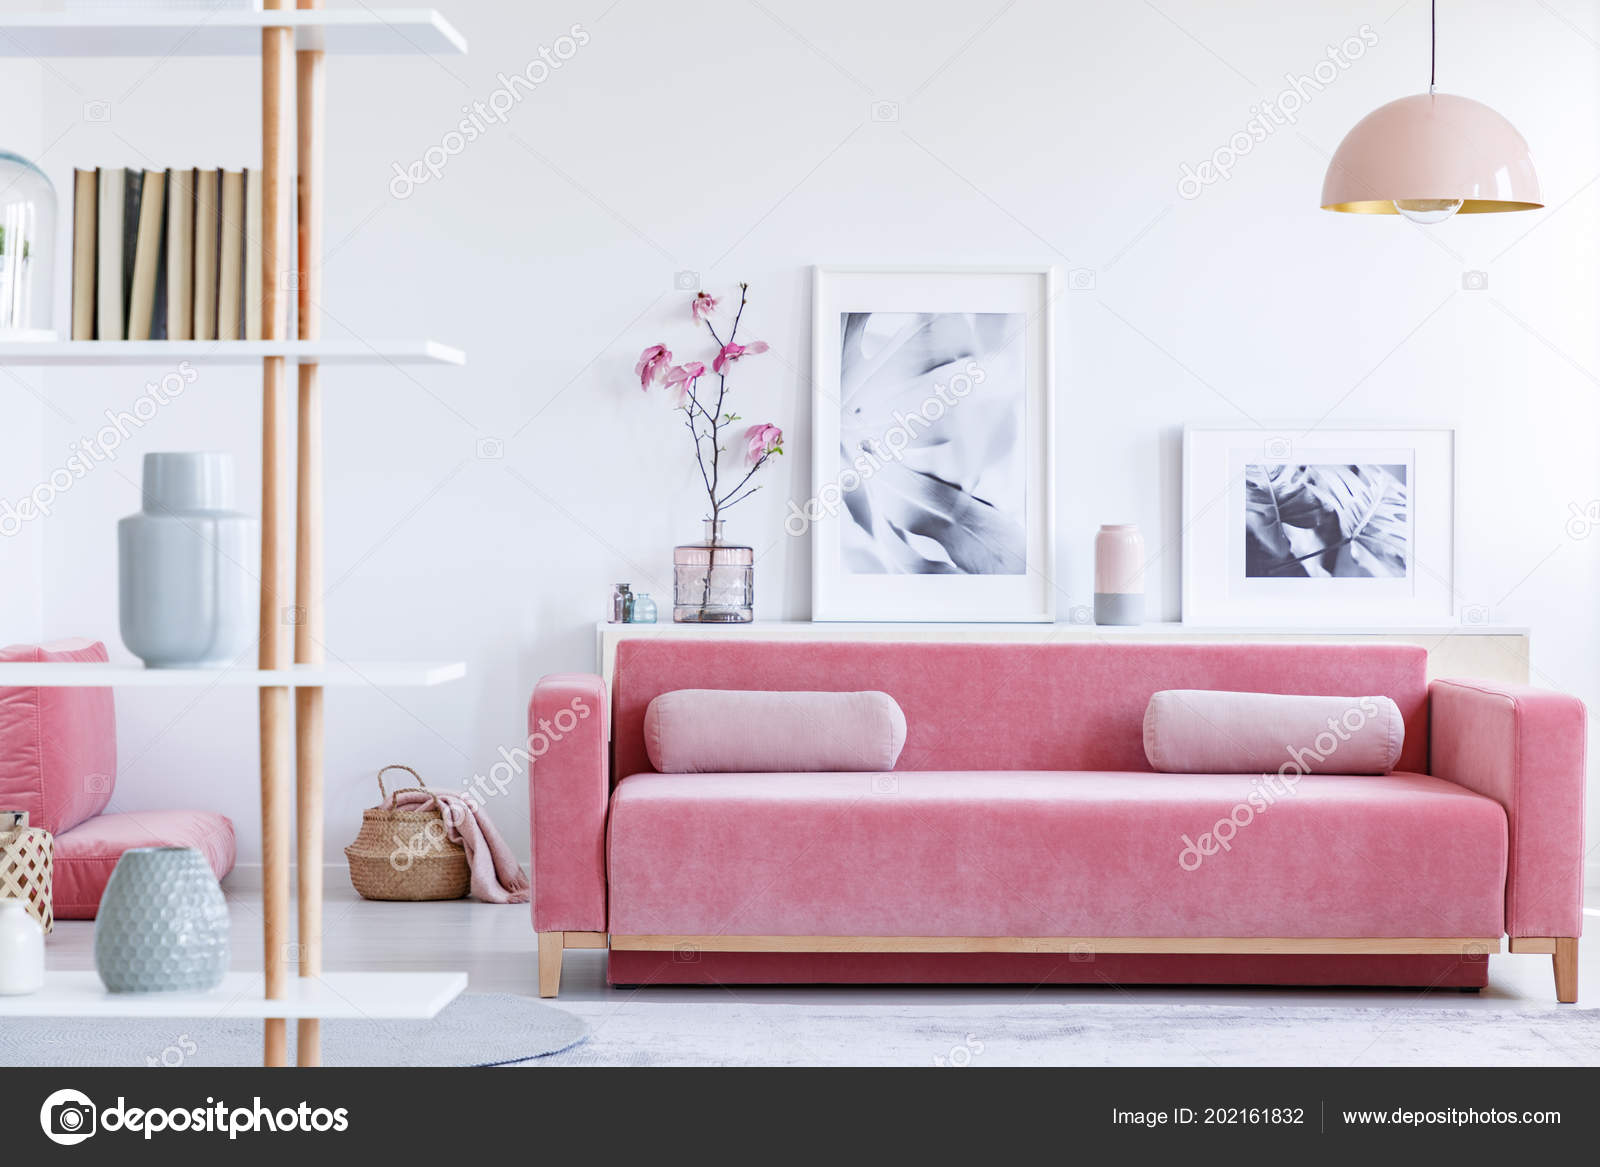 Fabulous Real Photo Pink Couch Pillows Front Shelf Posters Flowers Unemploymentrelief Wooden Chair Designs For Living Room Unemploymentrelieforg